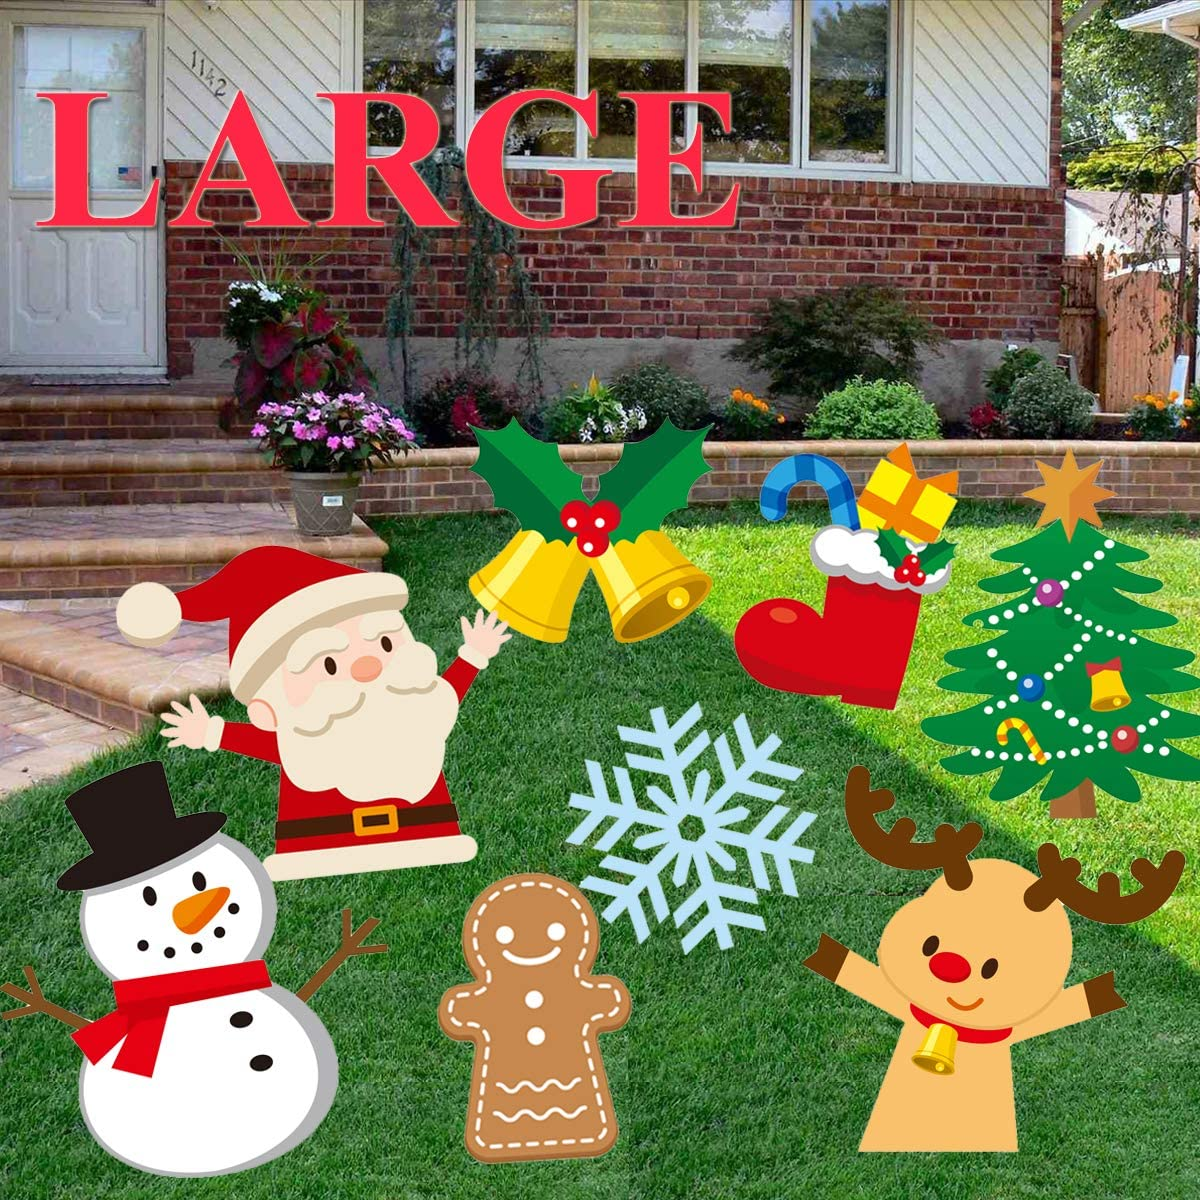 Christmas Yard Signs Stake 8 Pack Christmas Decorations Outdoor Garden Signs with Stakes Santa Claus,Snowman,Stocking,Snow Flake,Christmas elk,Christmas Tree,Bell,Gingerbread Man Holiday Party Decor